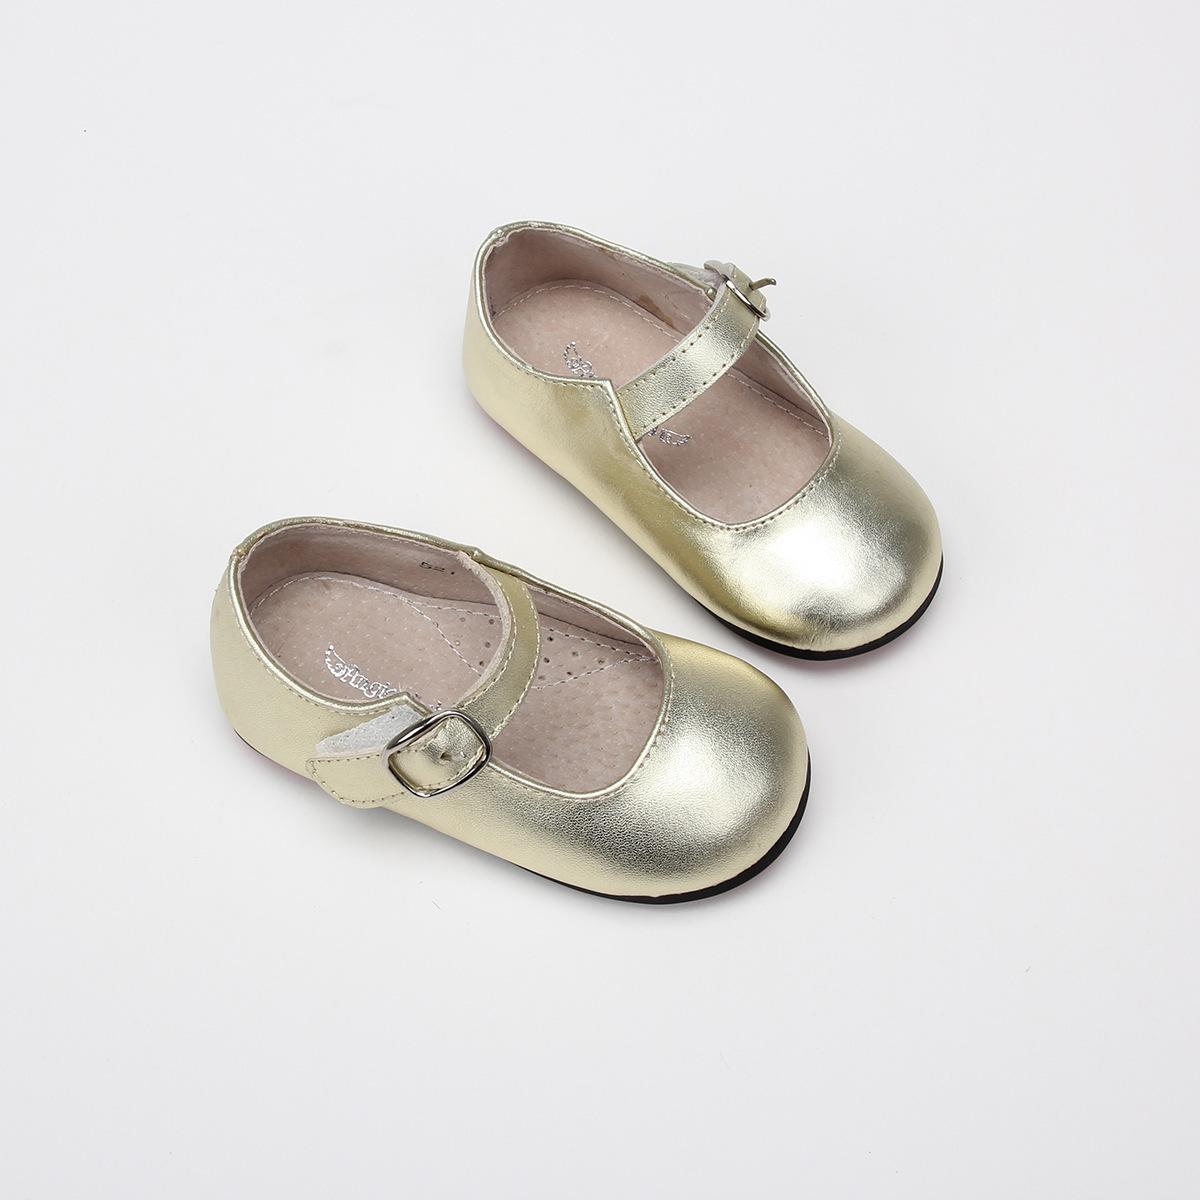 Girl Princess Sandal 2018 New Pattern Summer Children Small Leather Single Shoes Shine Study Walking Shoes Cowhide Silver Fashion